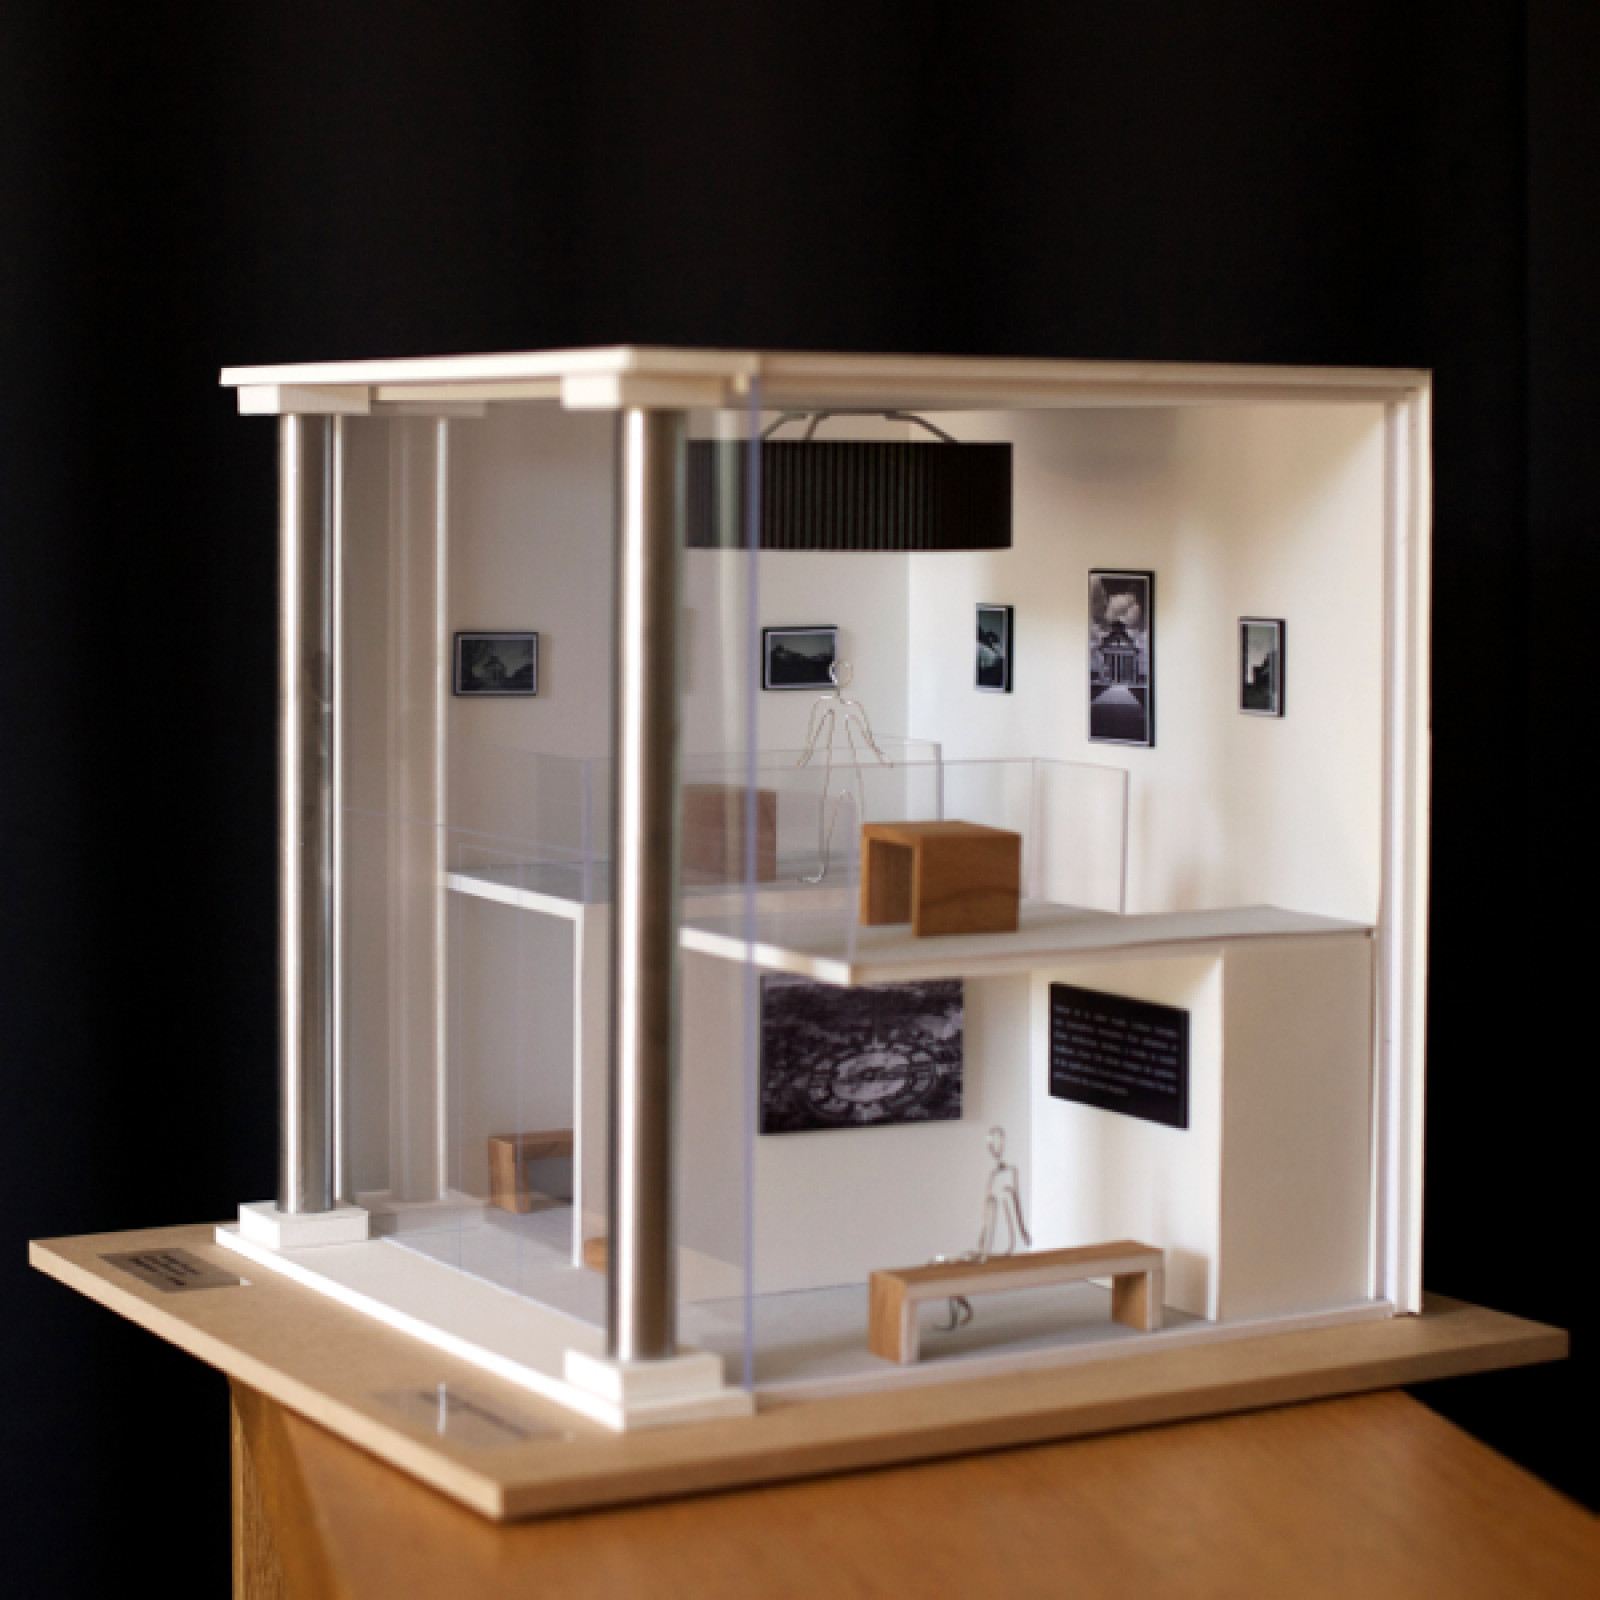 architecte interieur besancon maquette musee. Black Bedroom Furniture Sets. Home Design Ideas